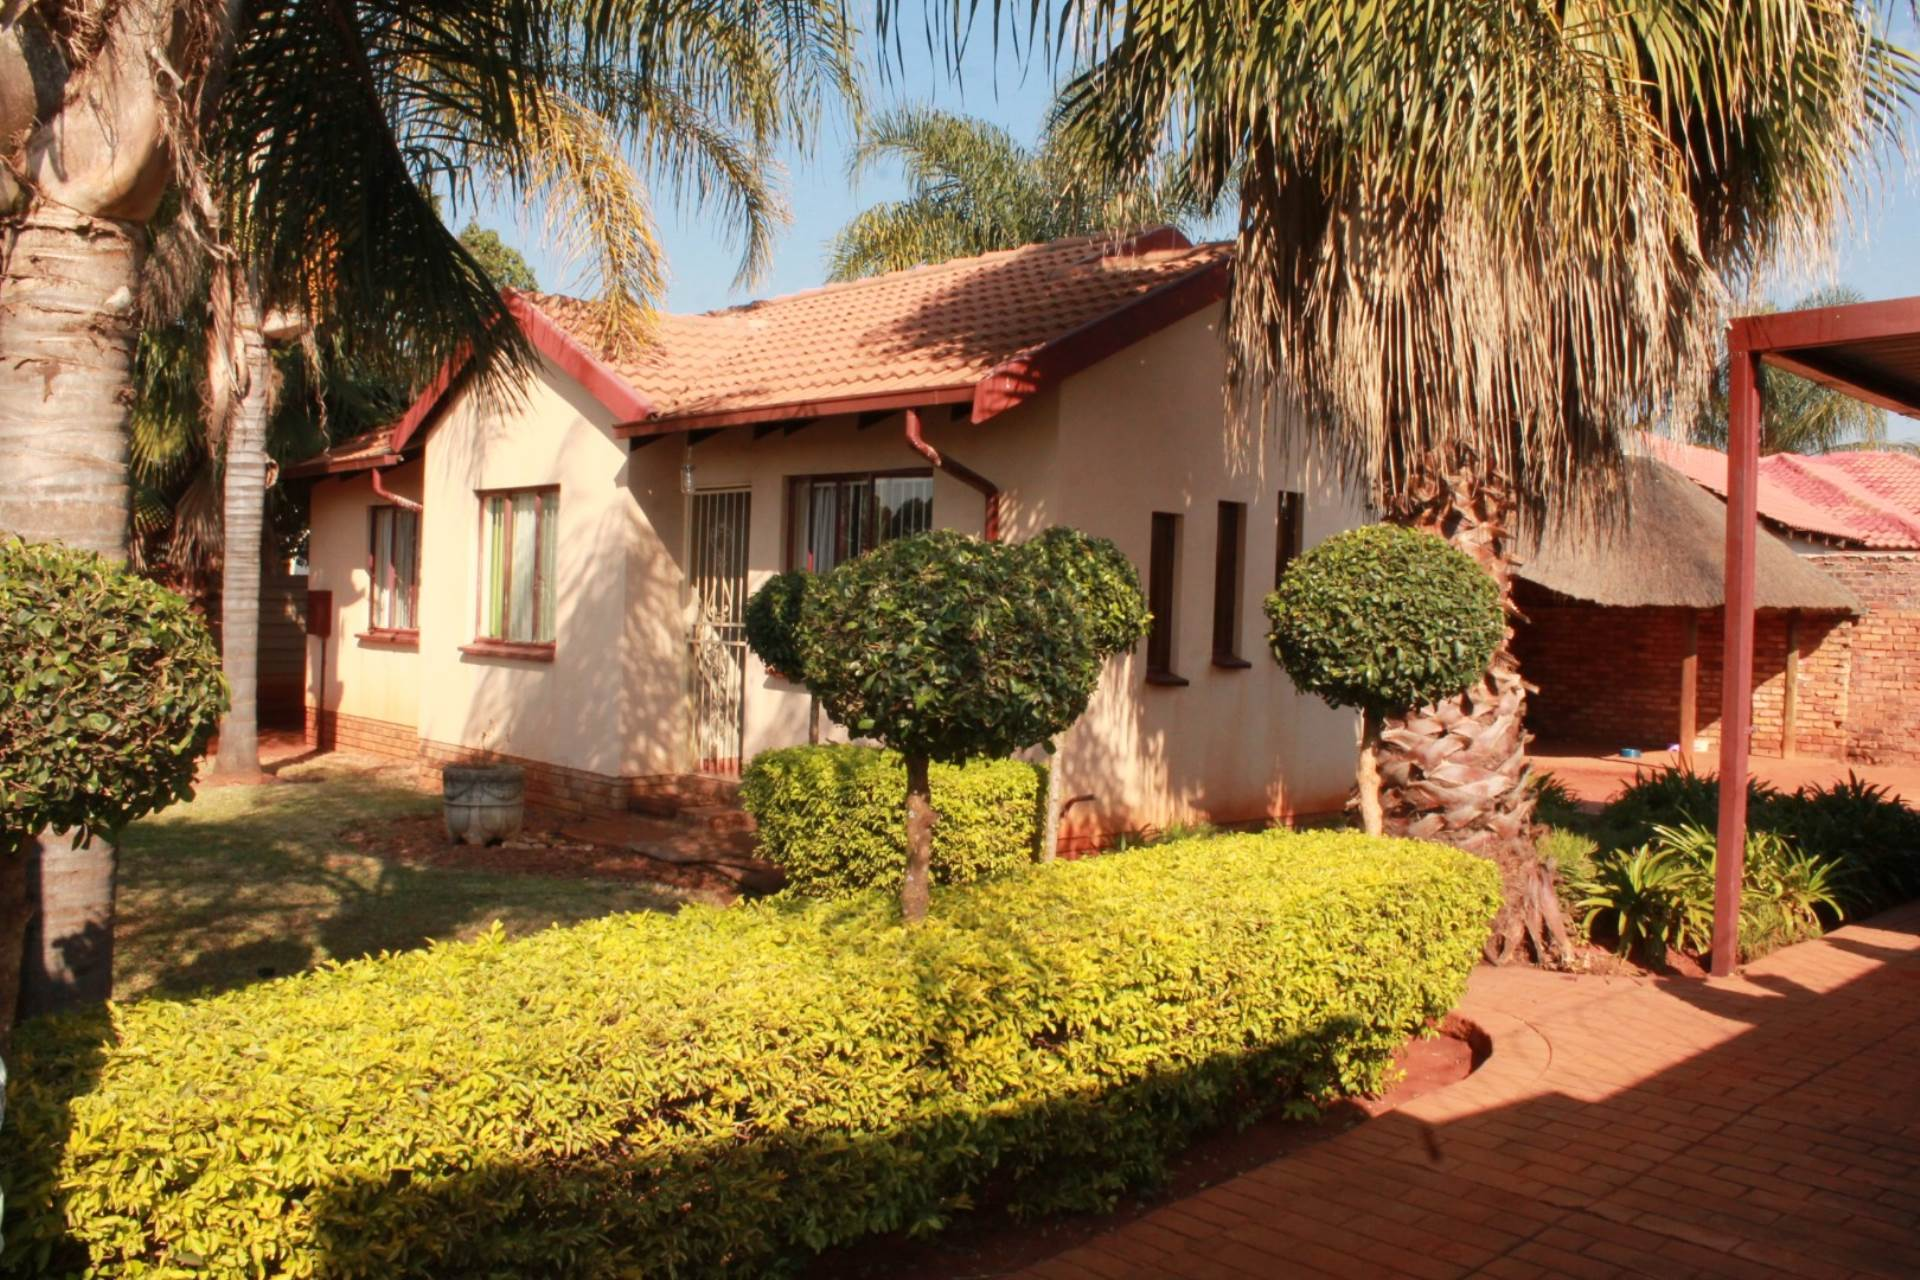 Property and Houses for sale in Hesteapark, House, 3 Bedrooms - ZAR 740,000